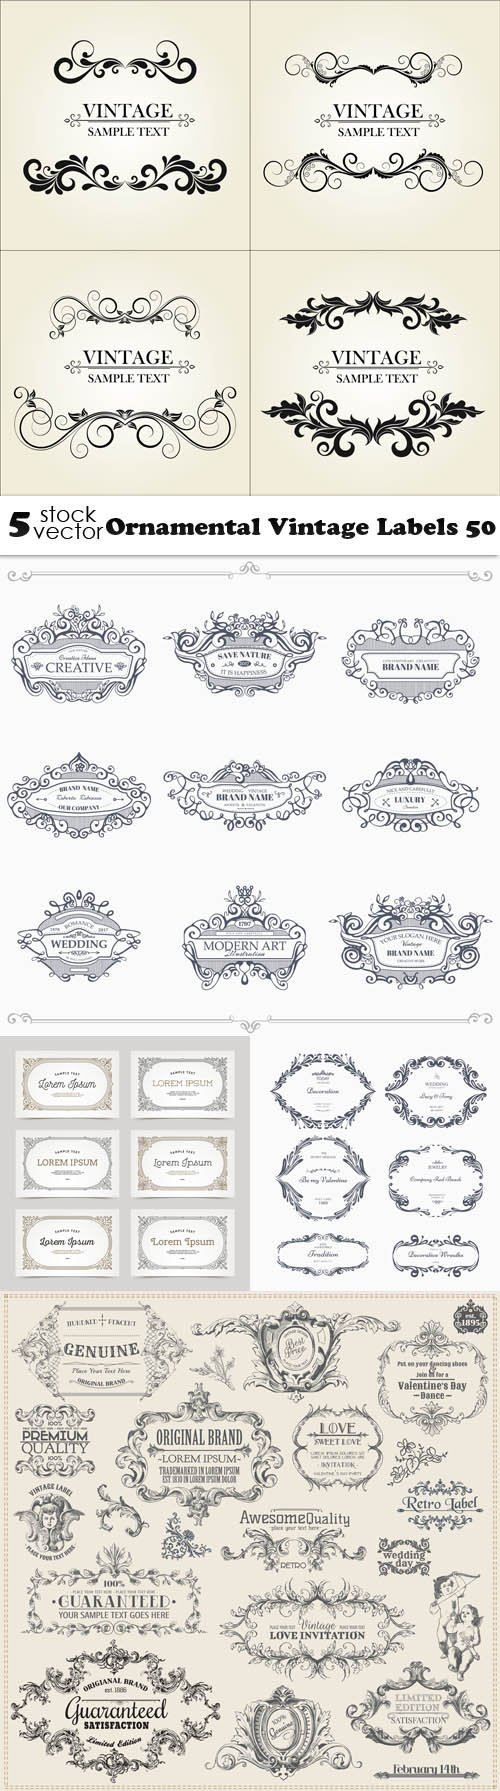 Vectors - Ornamental Vintage Labels 50